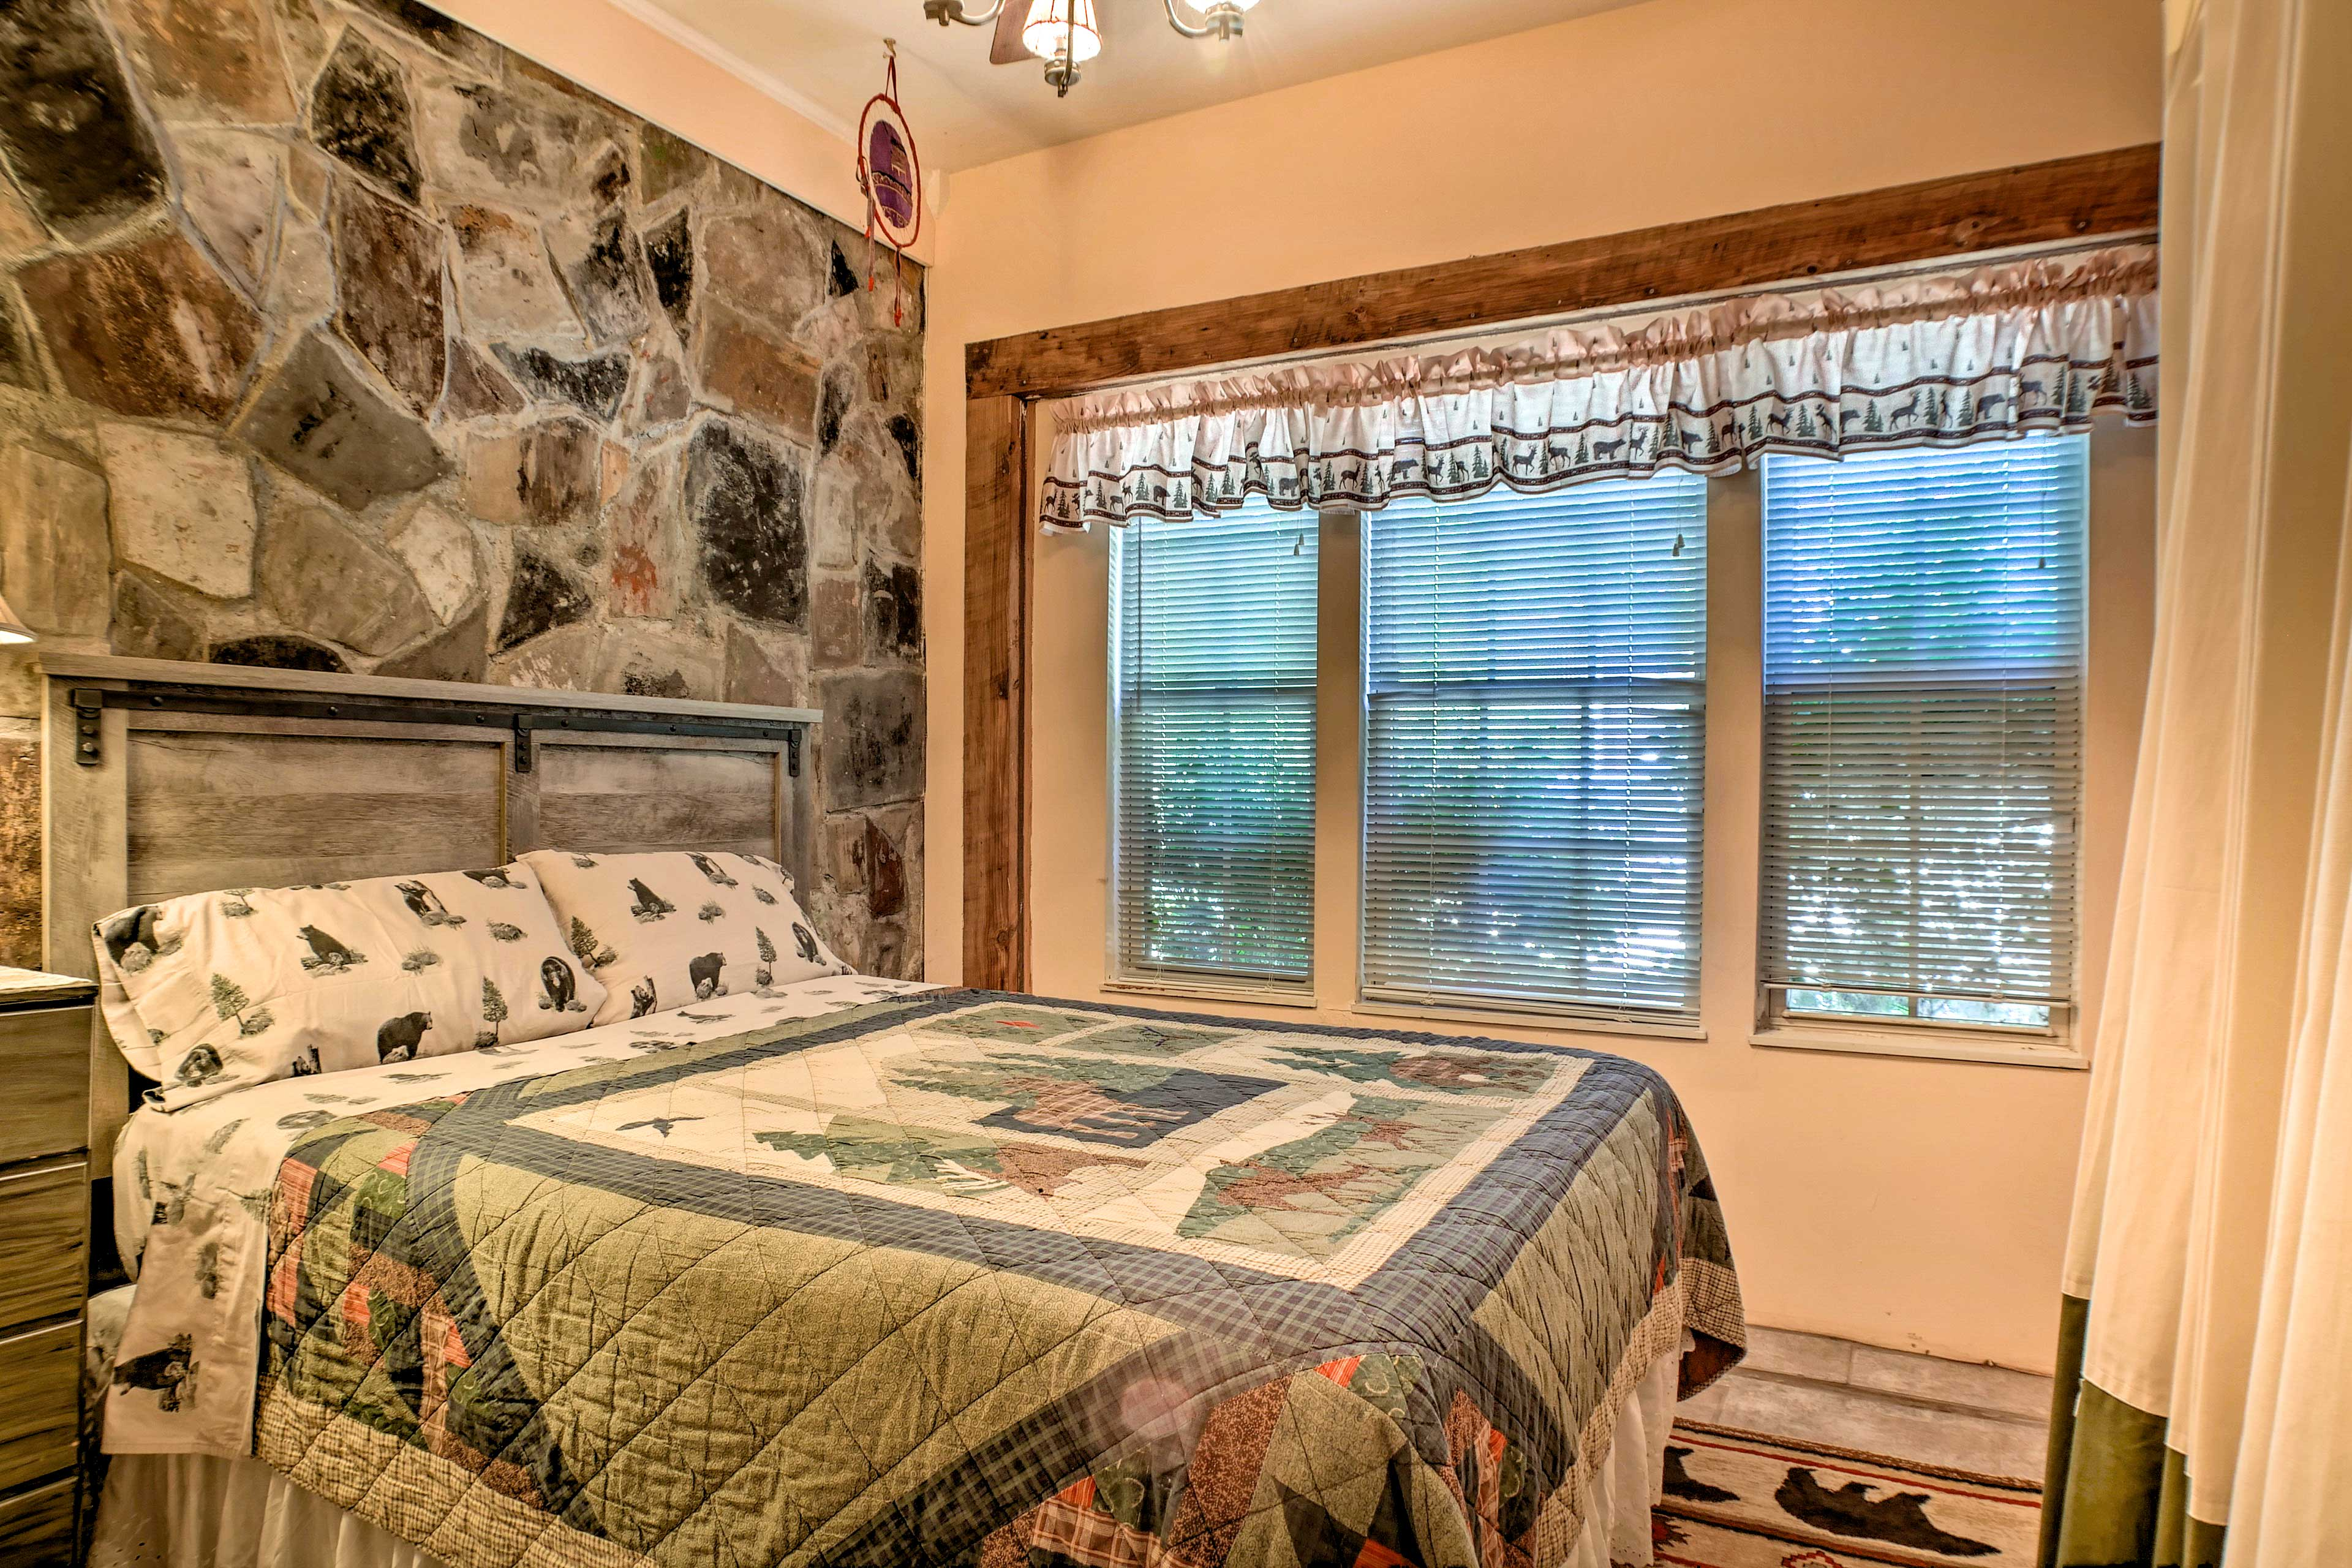 Just off of the dining room, you'll find a cozy bedroom with a queen bed.